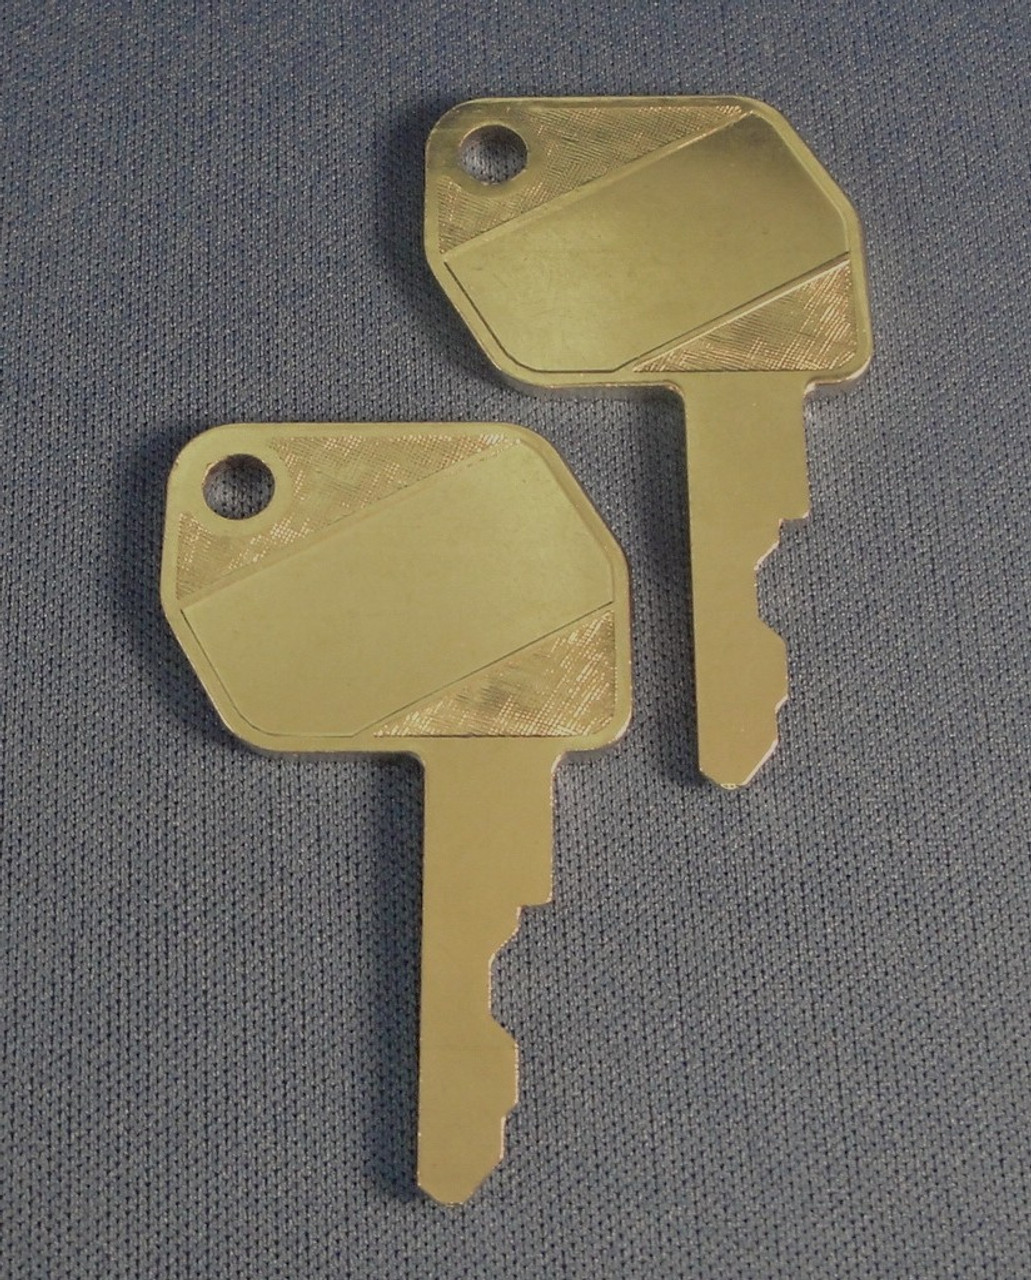 Old Ford Tractor Keys : Ford tractor key precut ilco pack